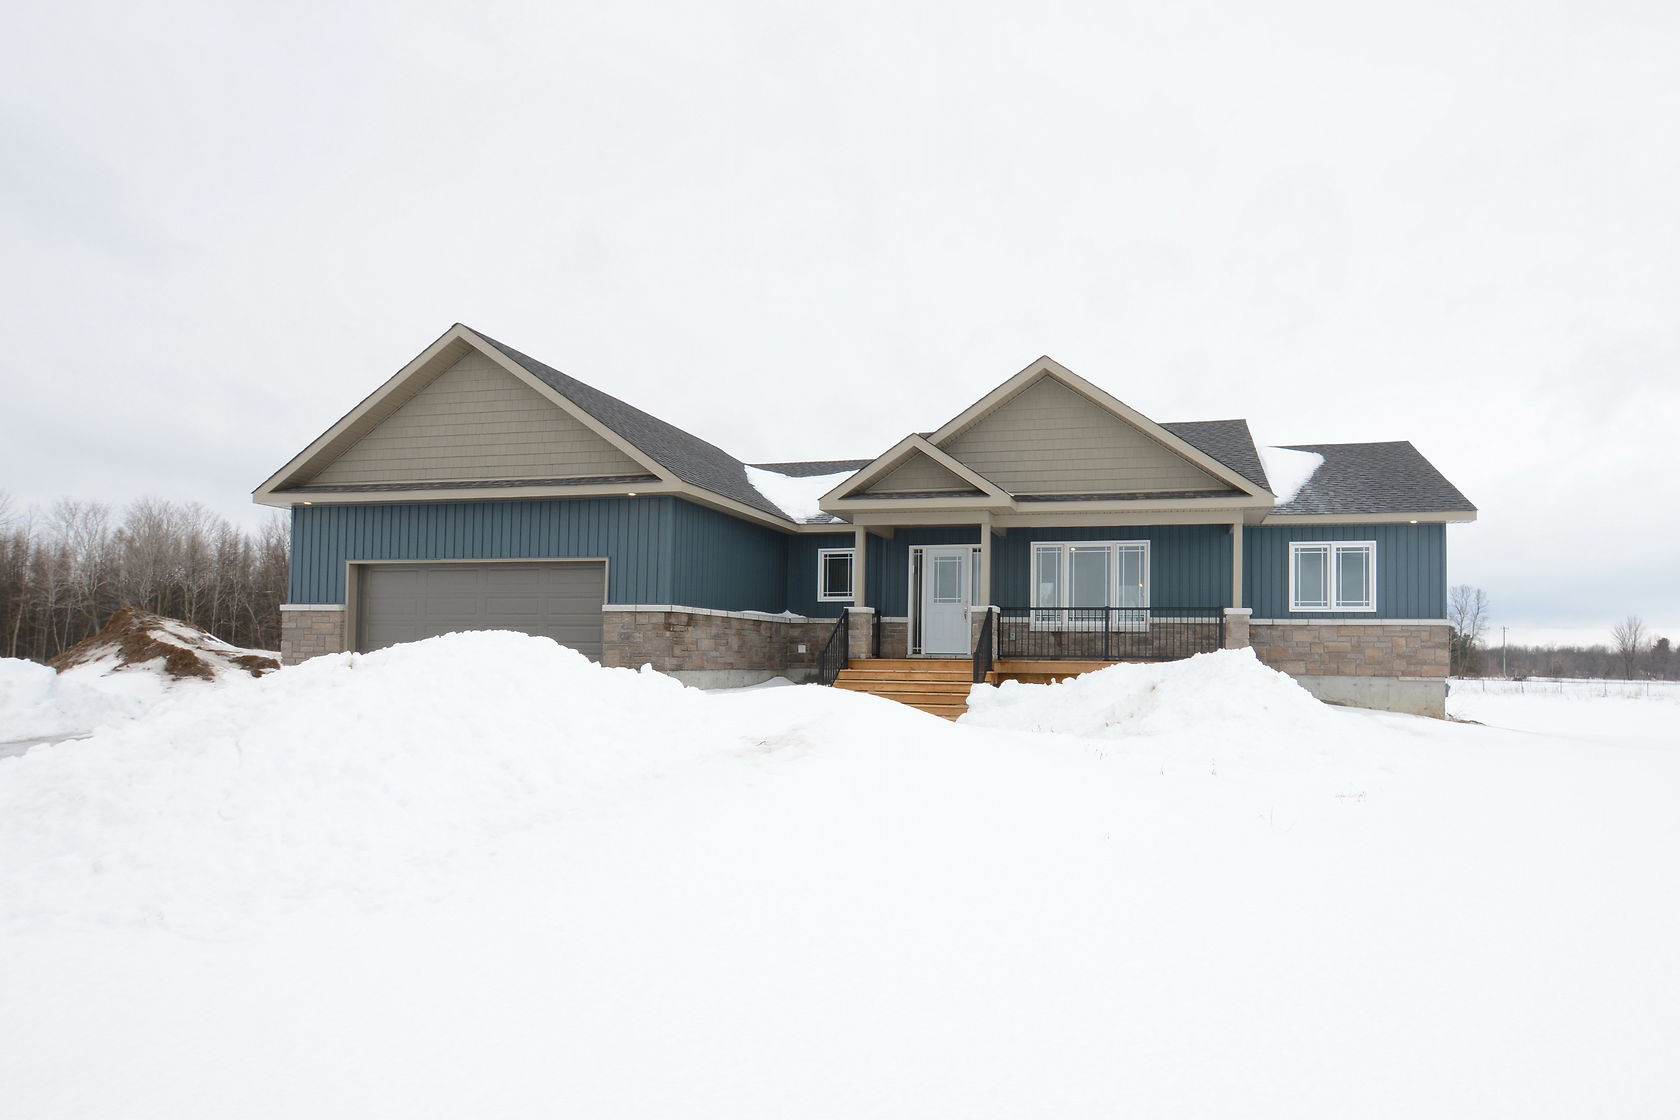 1182 County Road 43, Merrickville-Wolford